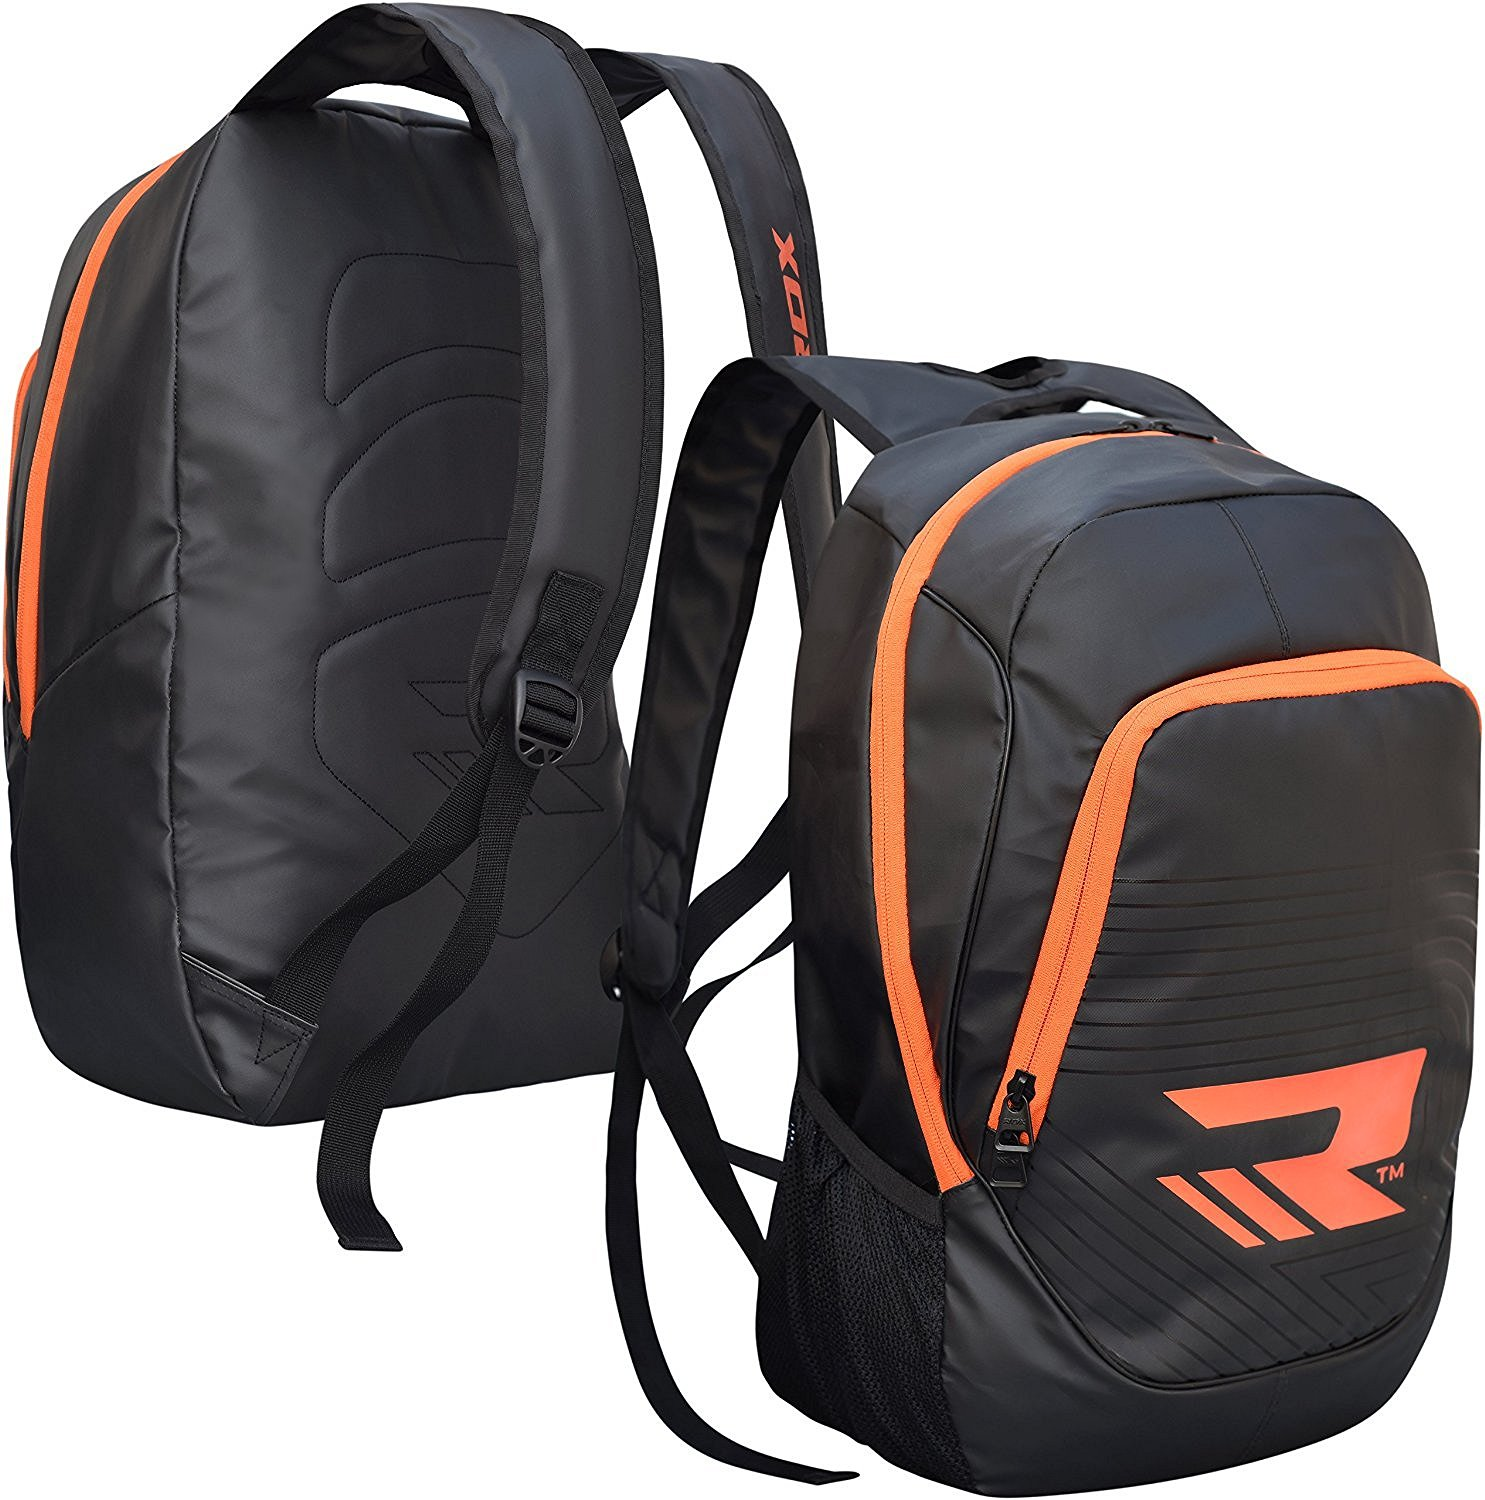 RDX GKB-R4O Sports Gym Duffel Bag Lightweight Backpack Travel